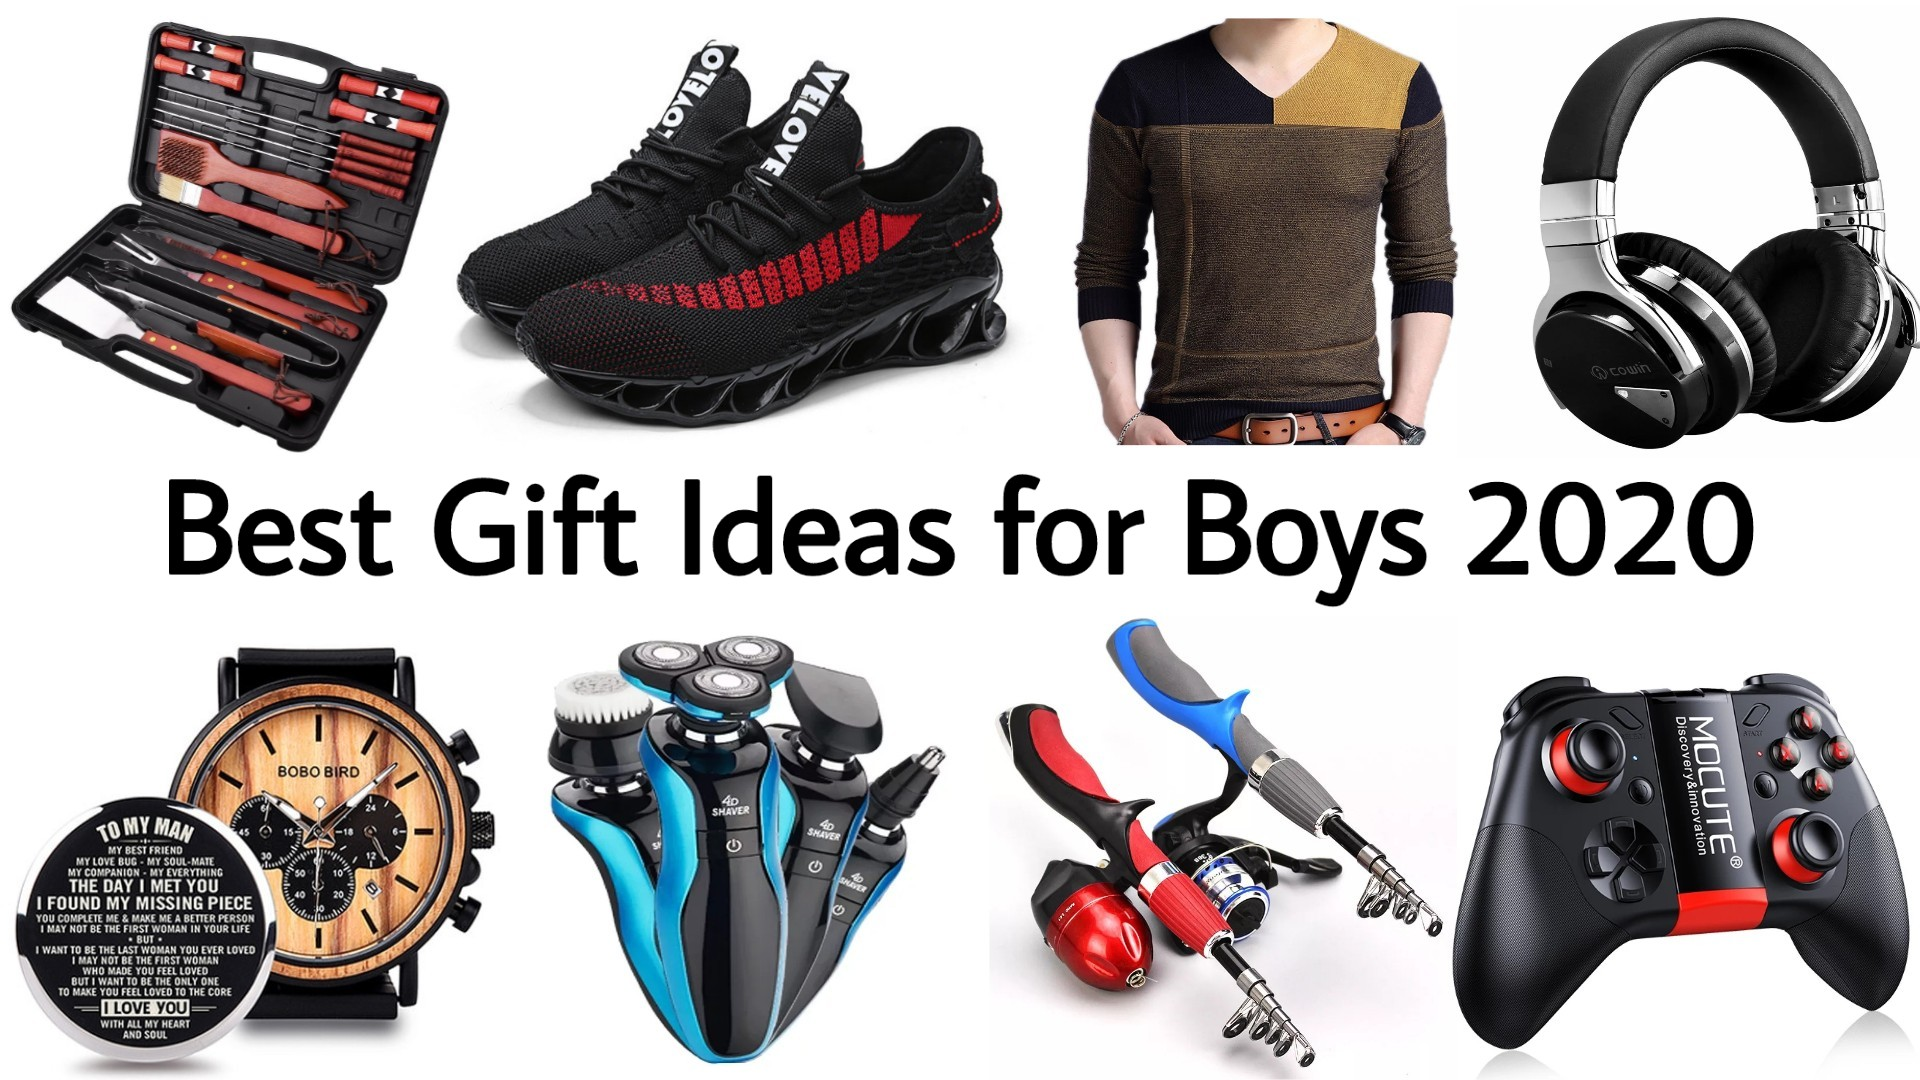 Best Christmas Gifts for Boys 2020 | Best Birthday Gifts for Boyfriend 2020